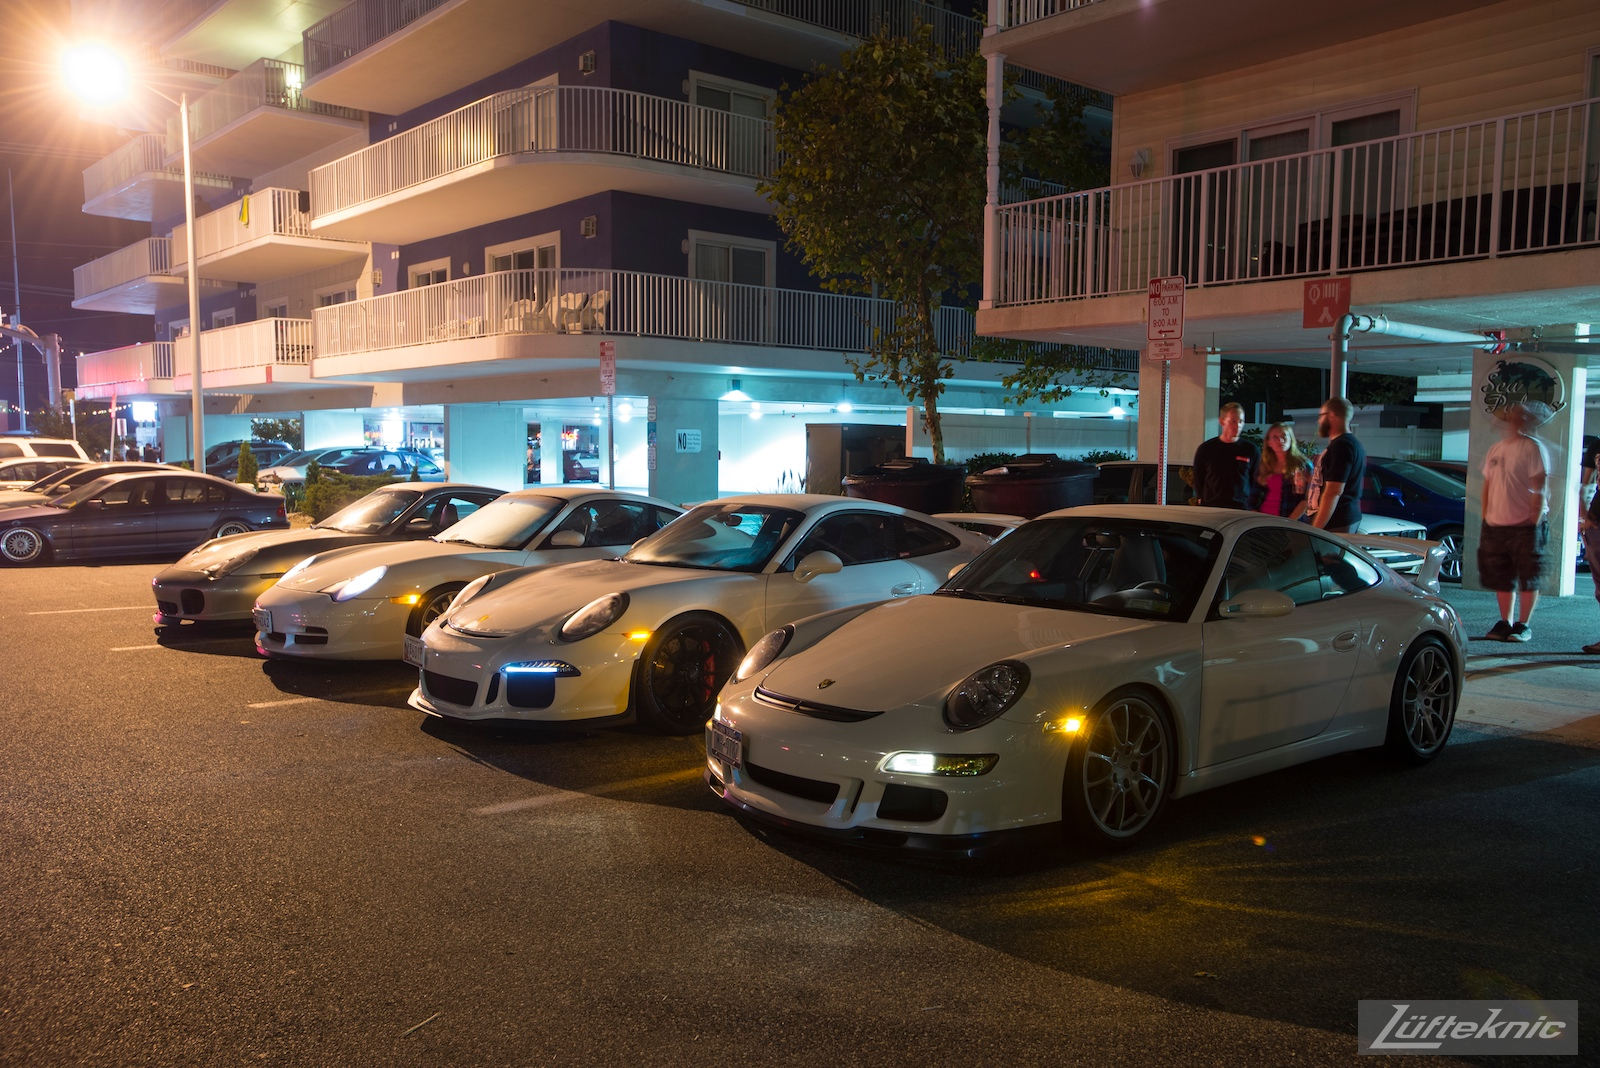 Lüfteknic Porsche 991 GT3 line up at h2oi at night